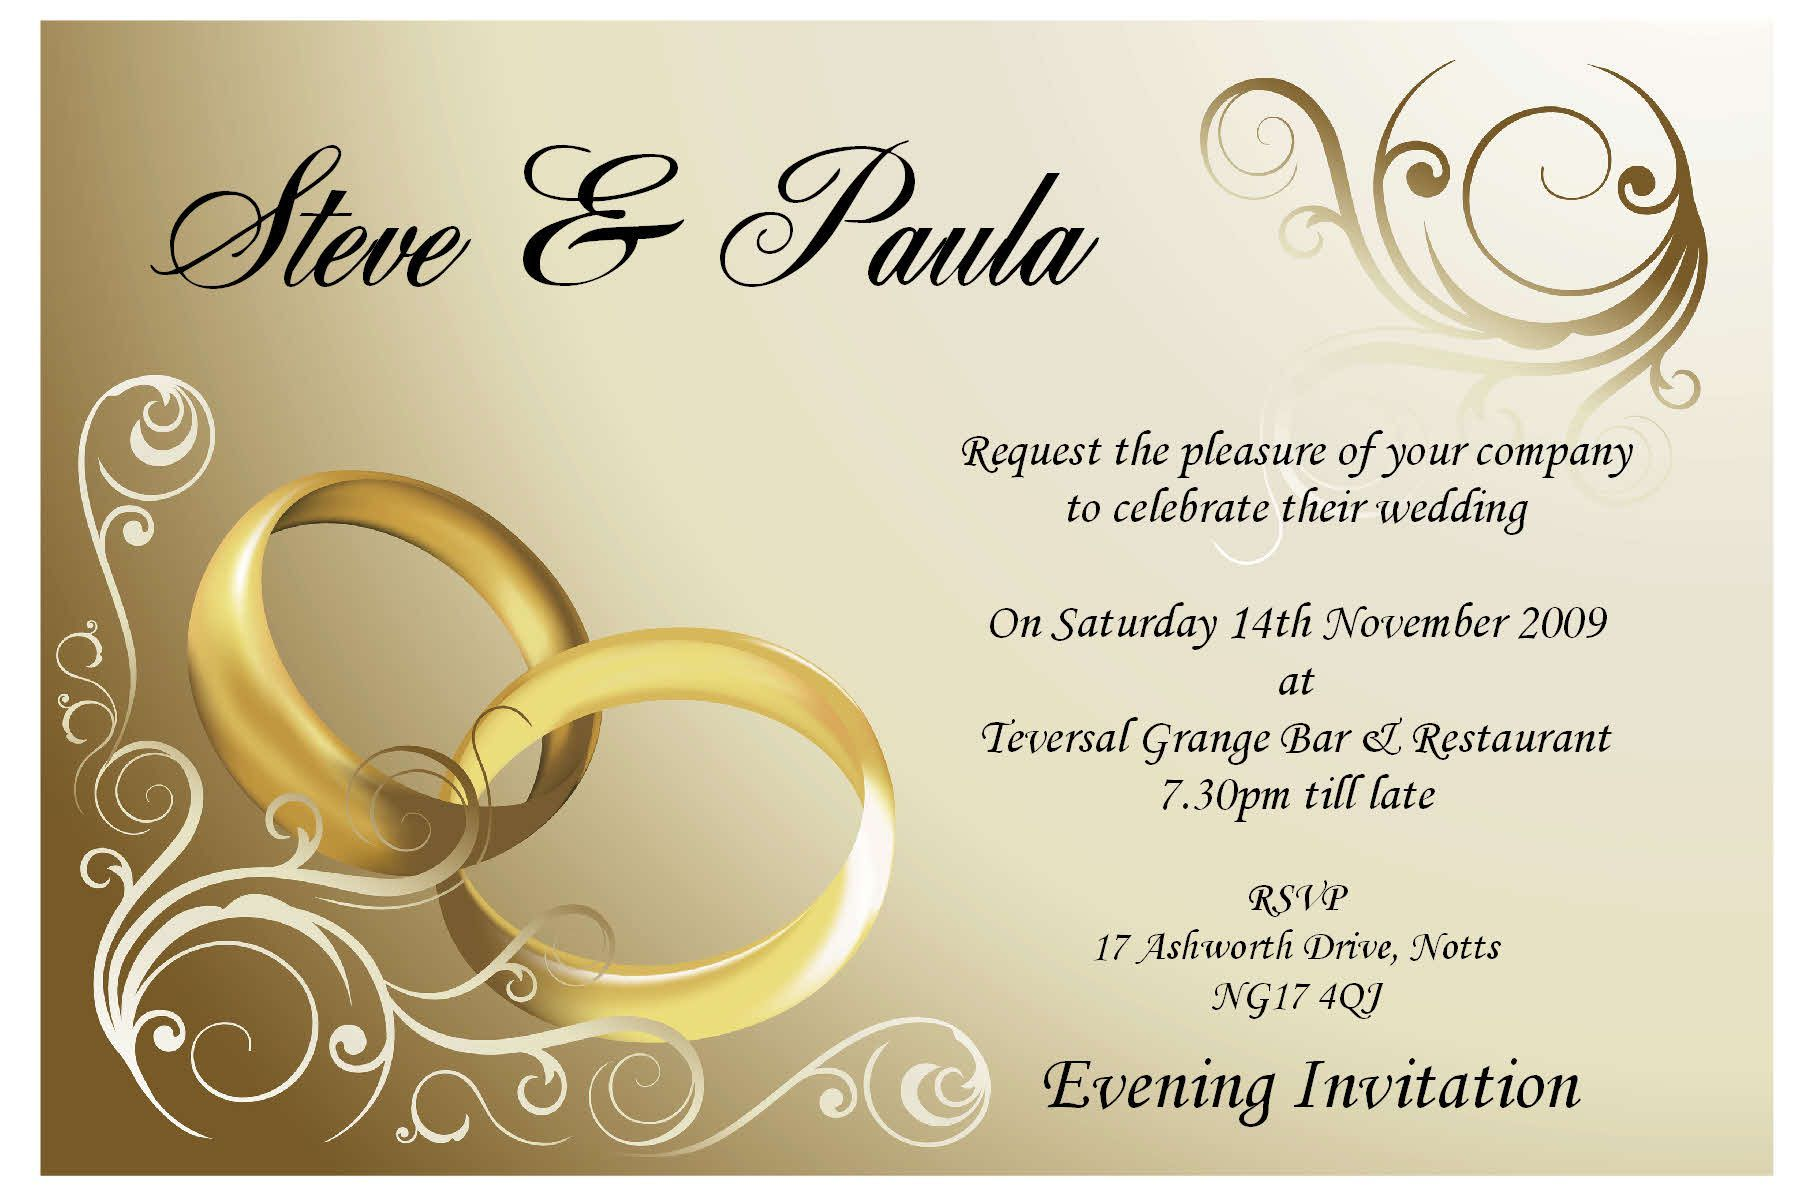 wedding invitation card design online free | wedding invitations ...